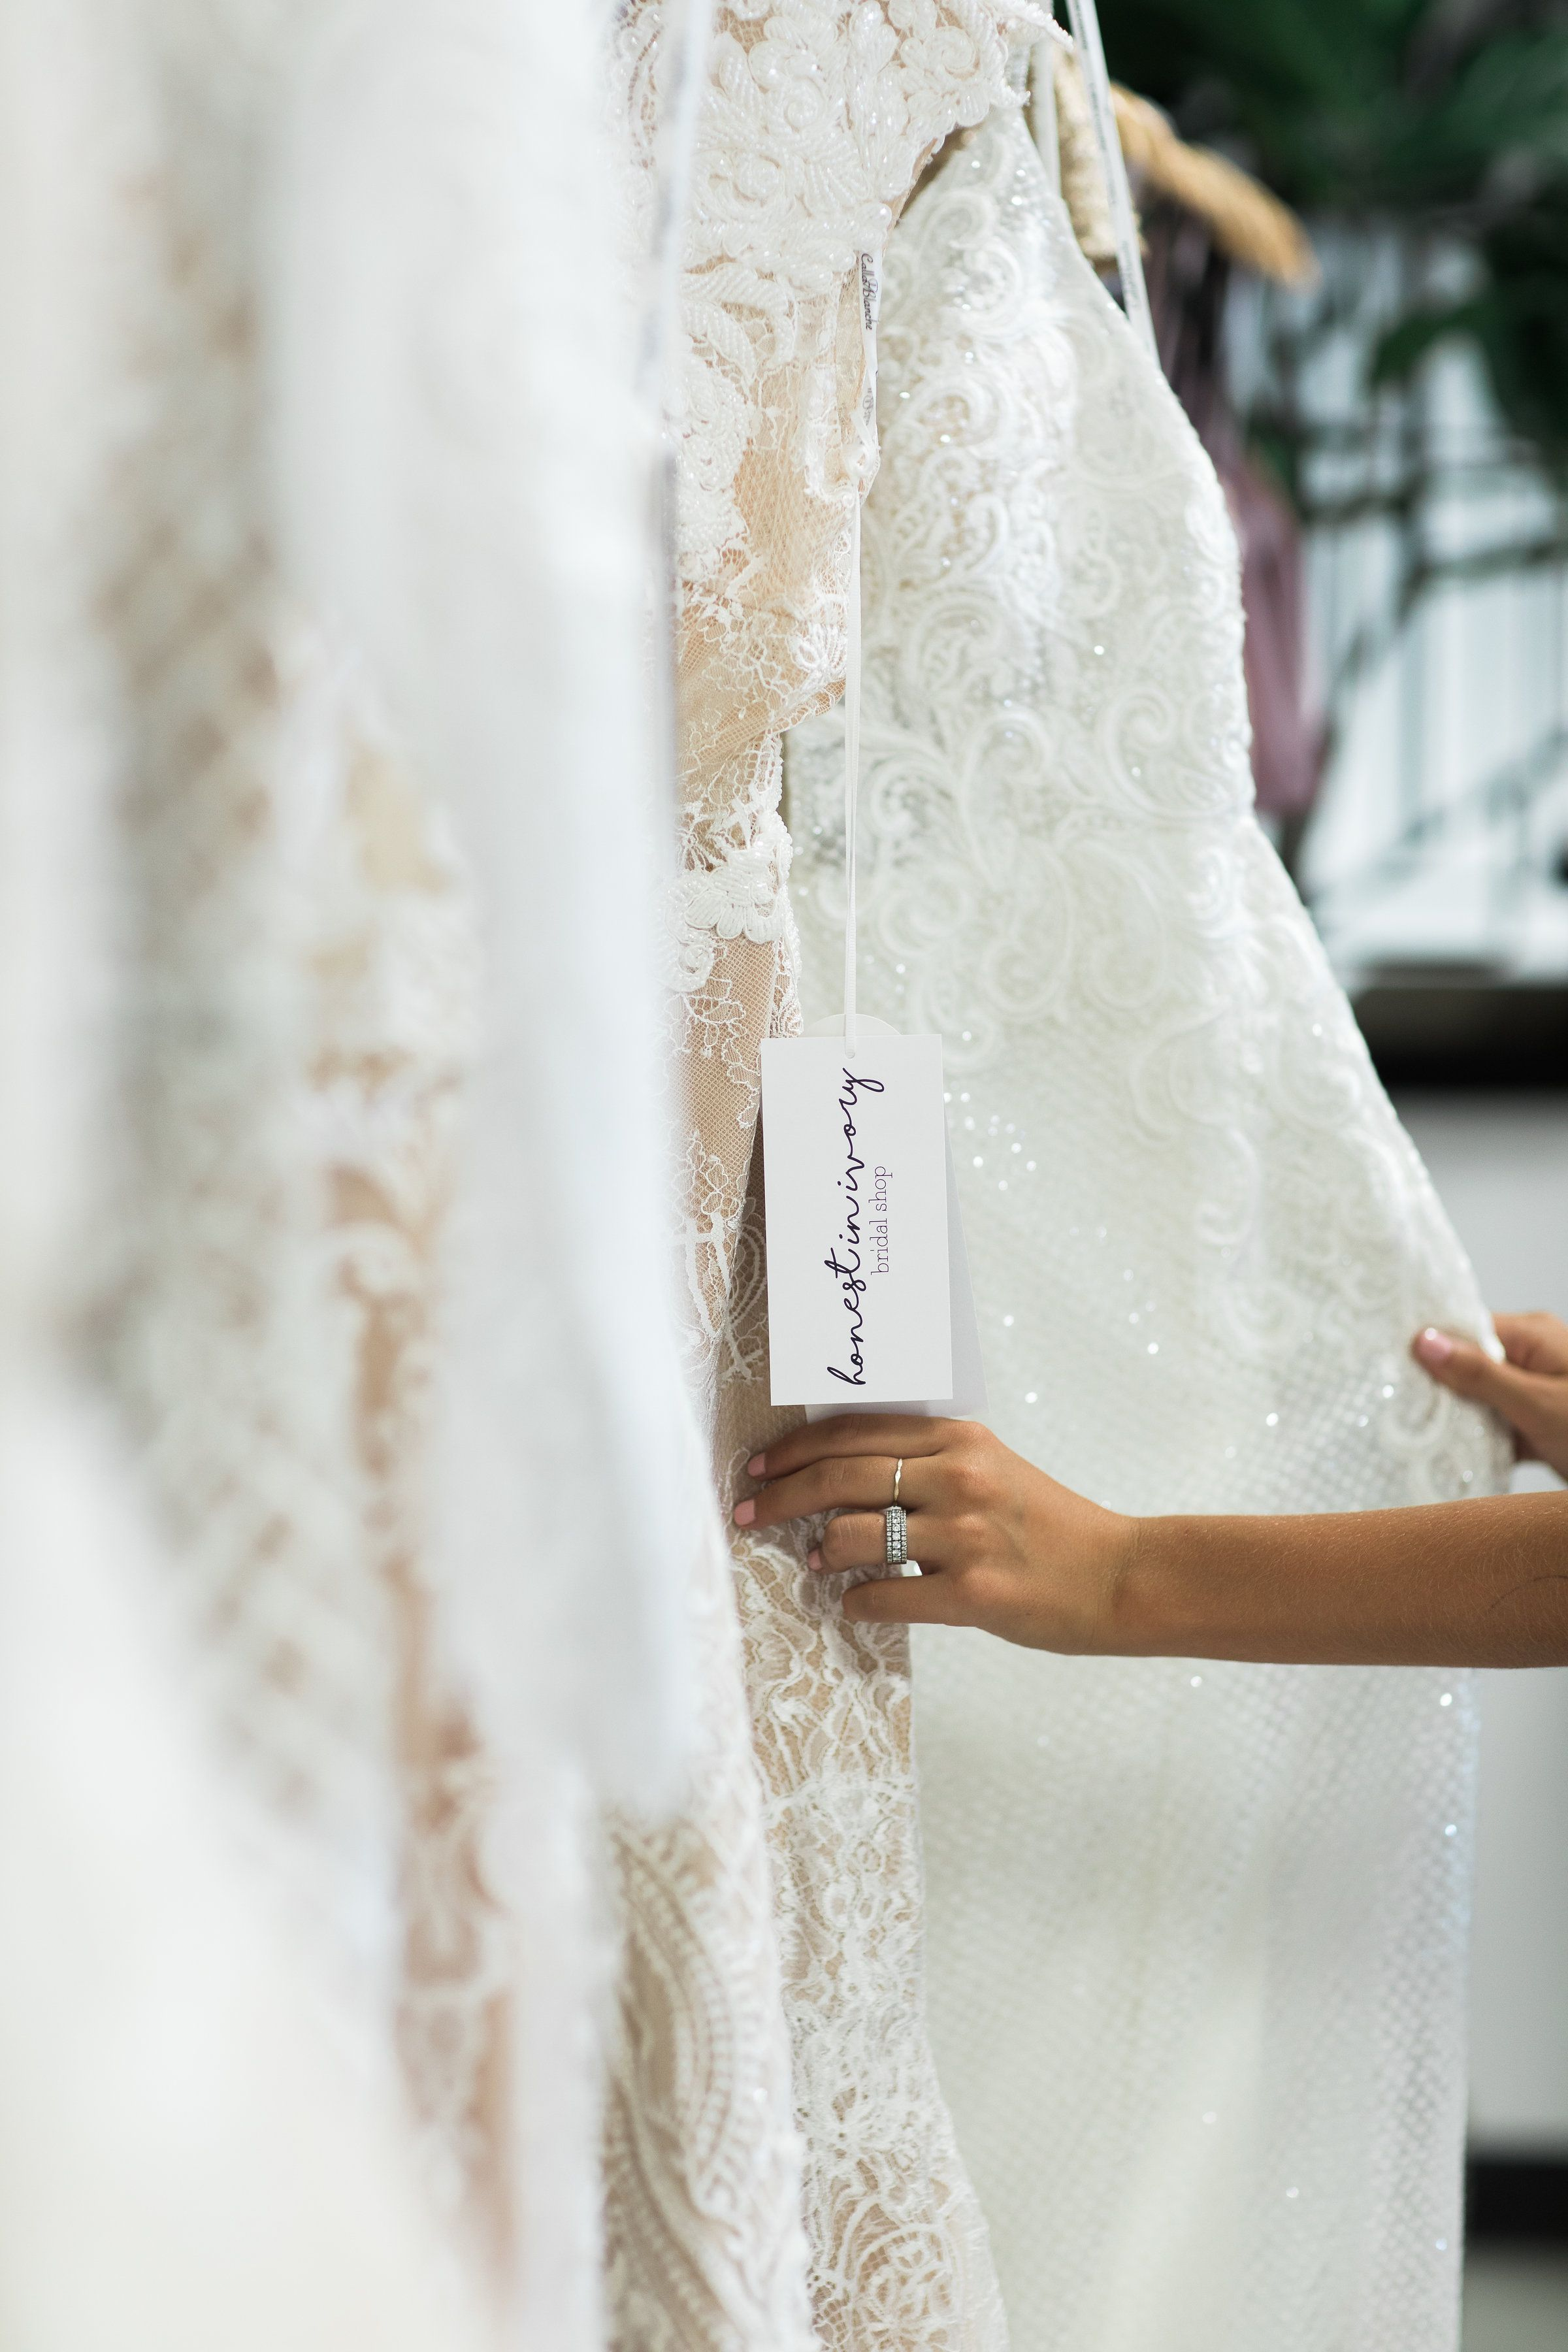 Bridal Shopping In Spokane Wa At Honest In Ivory Bridal Shop Bridal Ivory Bridal Wedding Dresses Lace